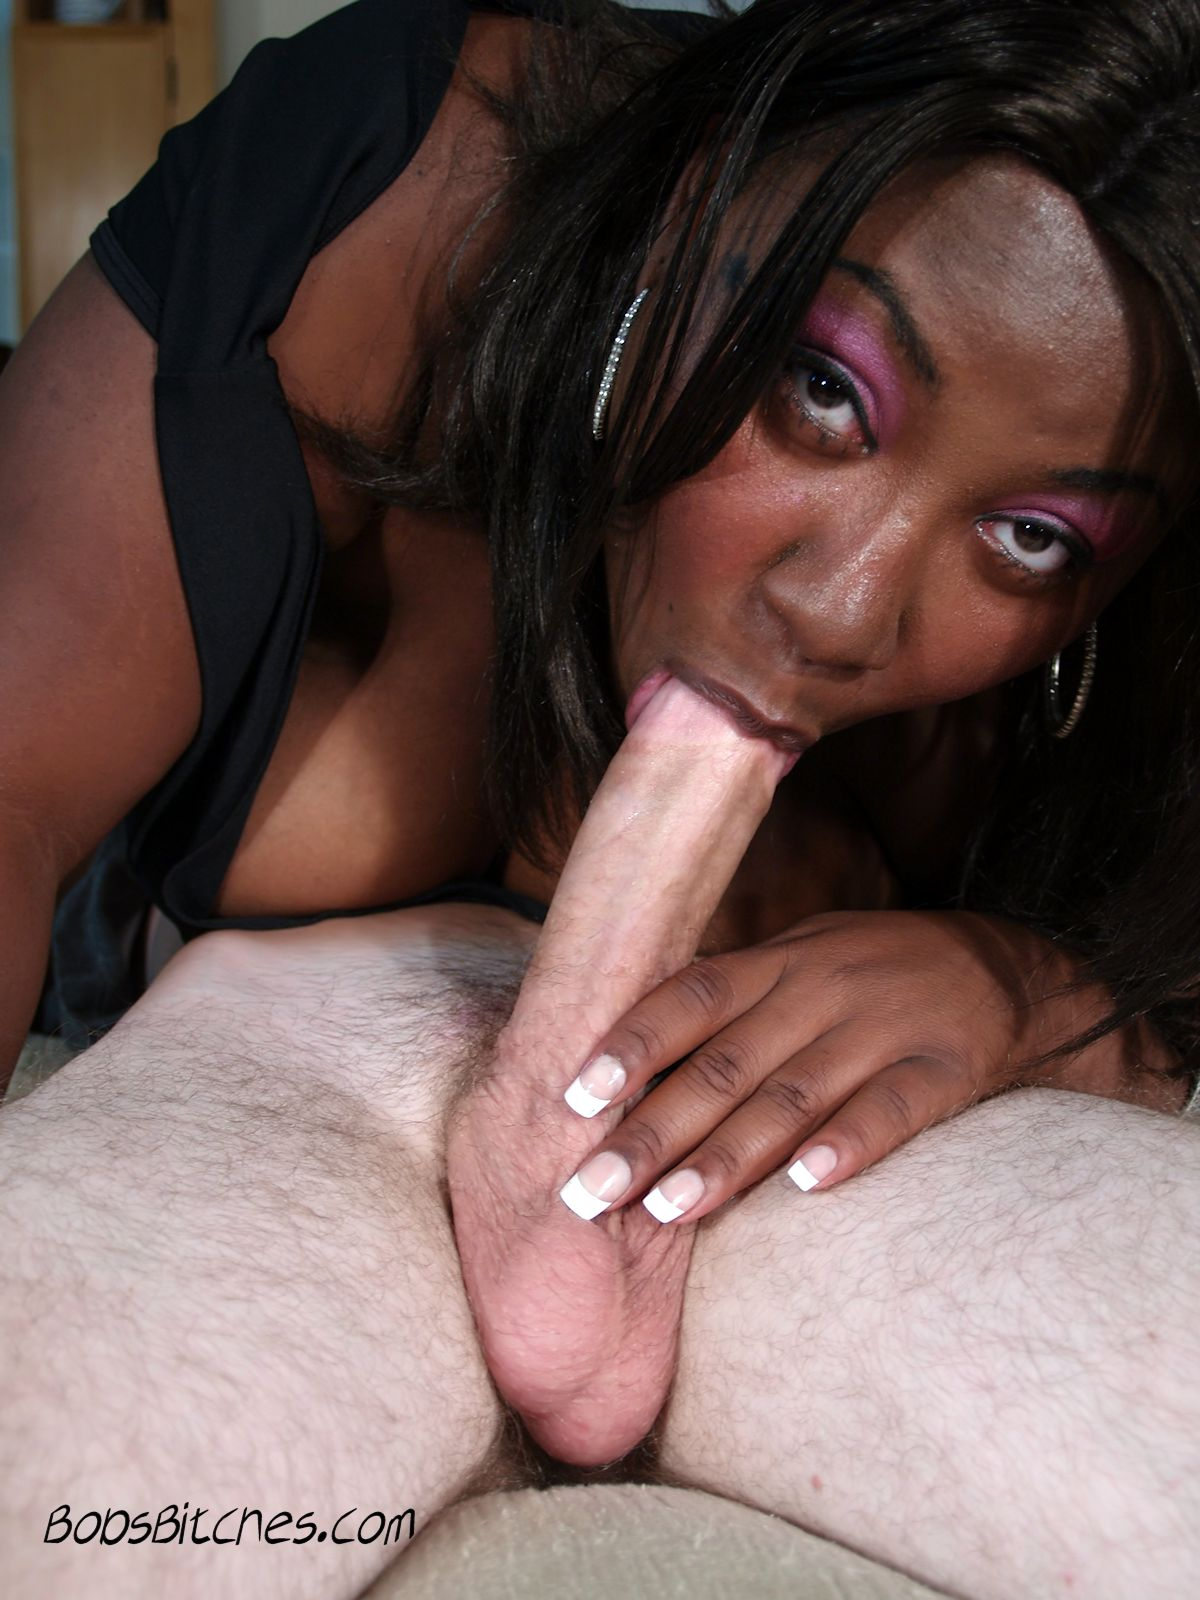 Ebony beauty, Timeka Taylor, goes down on a big white dick doing a 69.